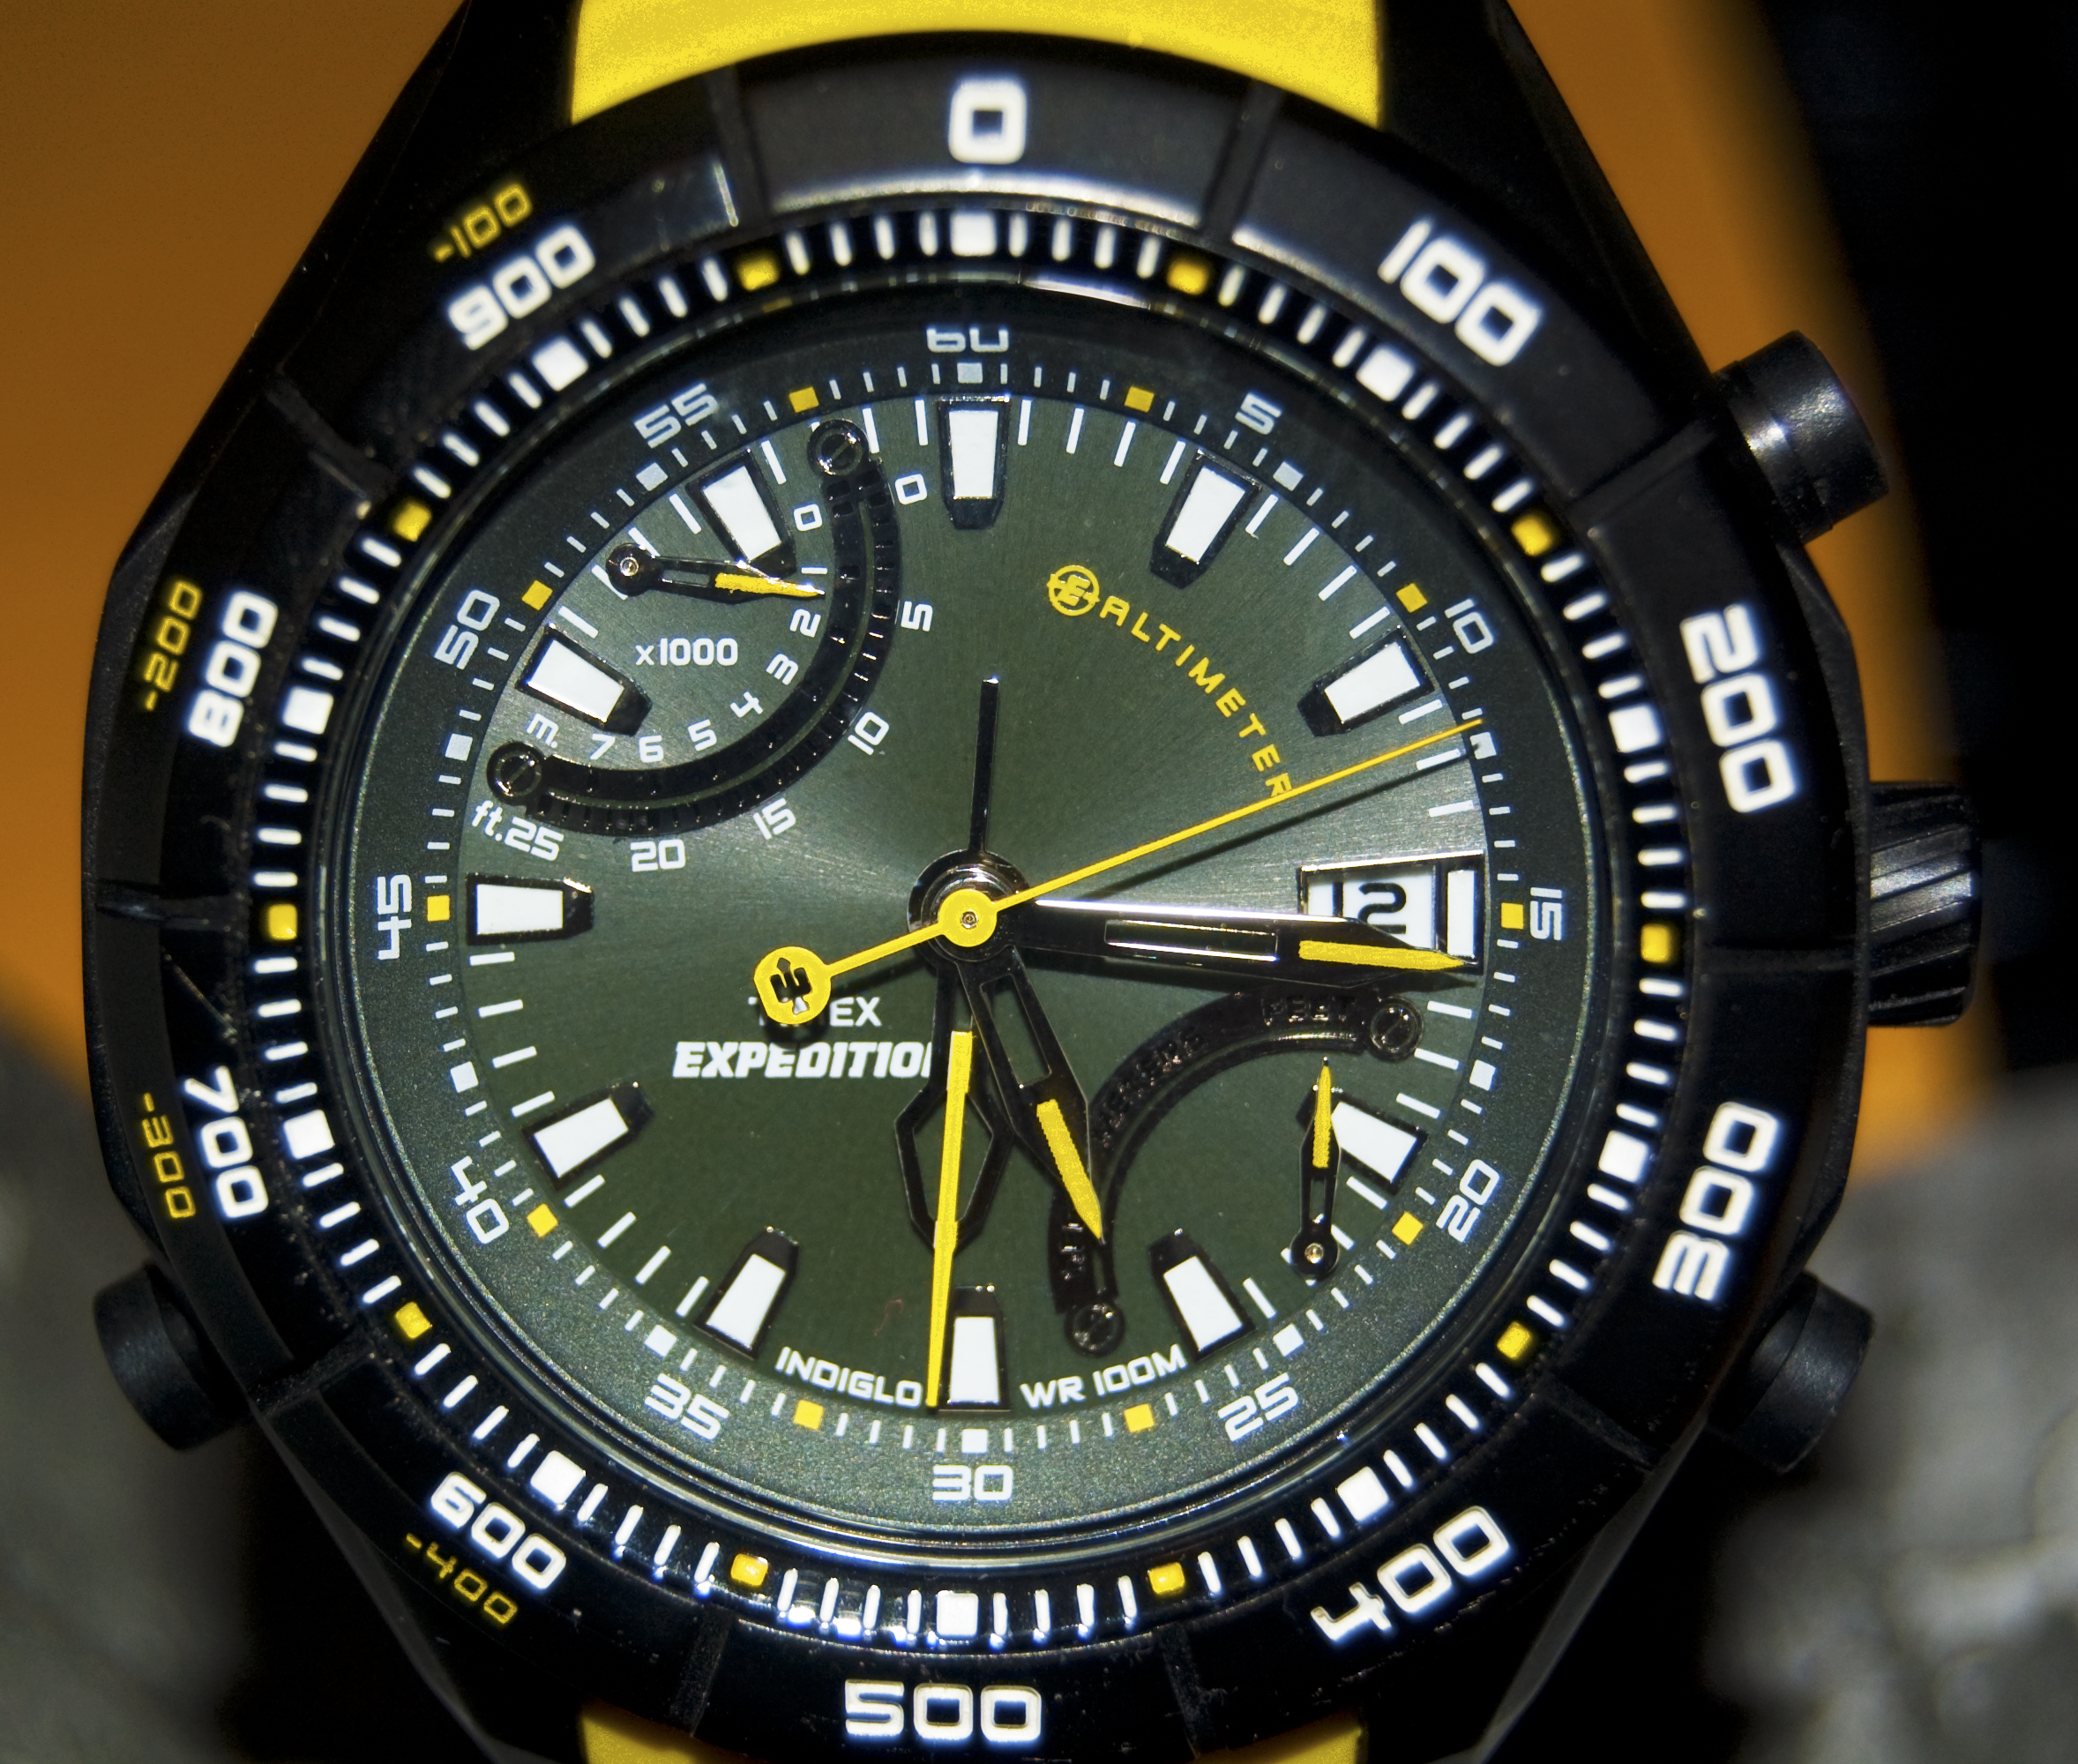 altitude casio watch prw atomic new products pro watches compass solar thermometer altimeter trek